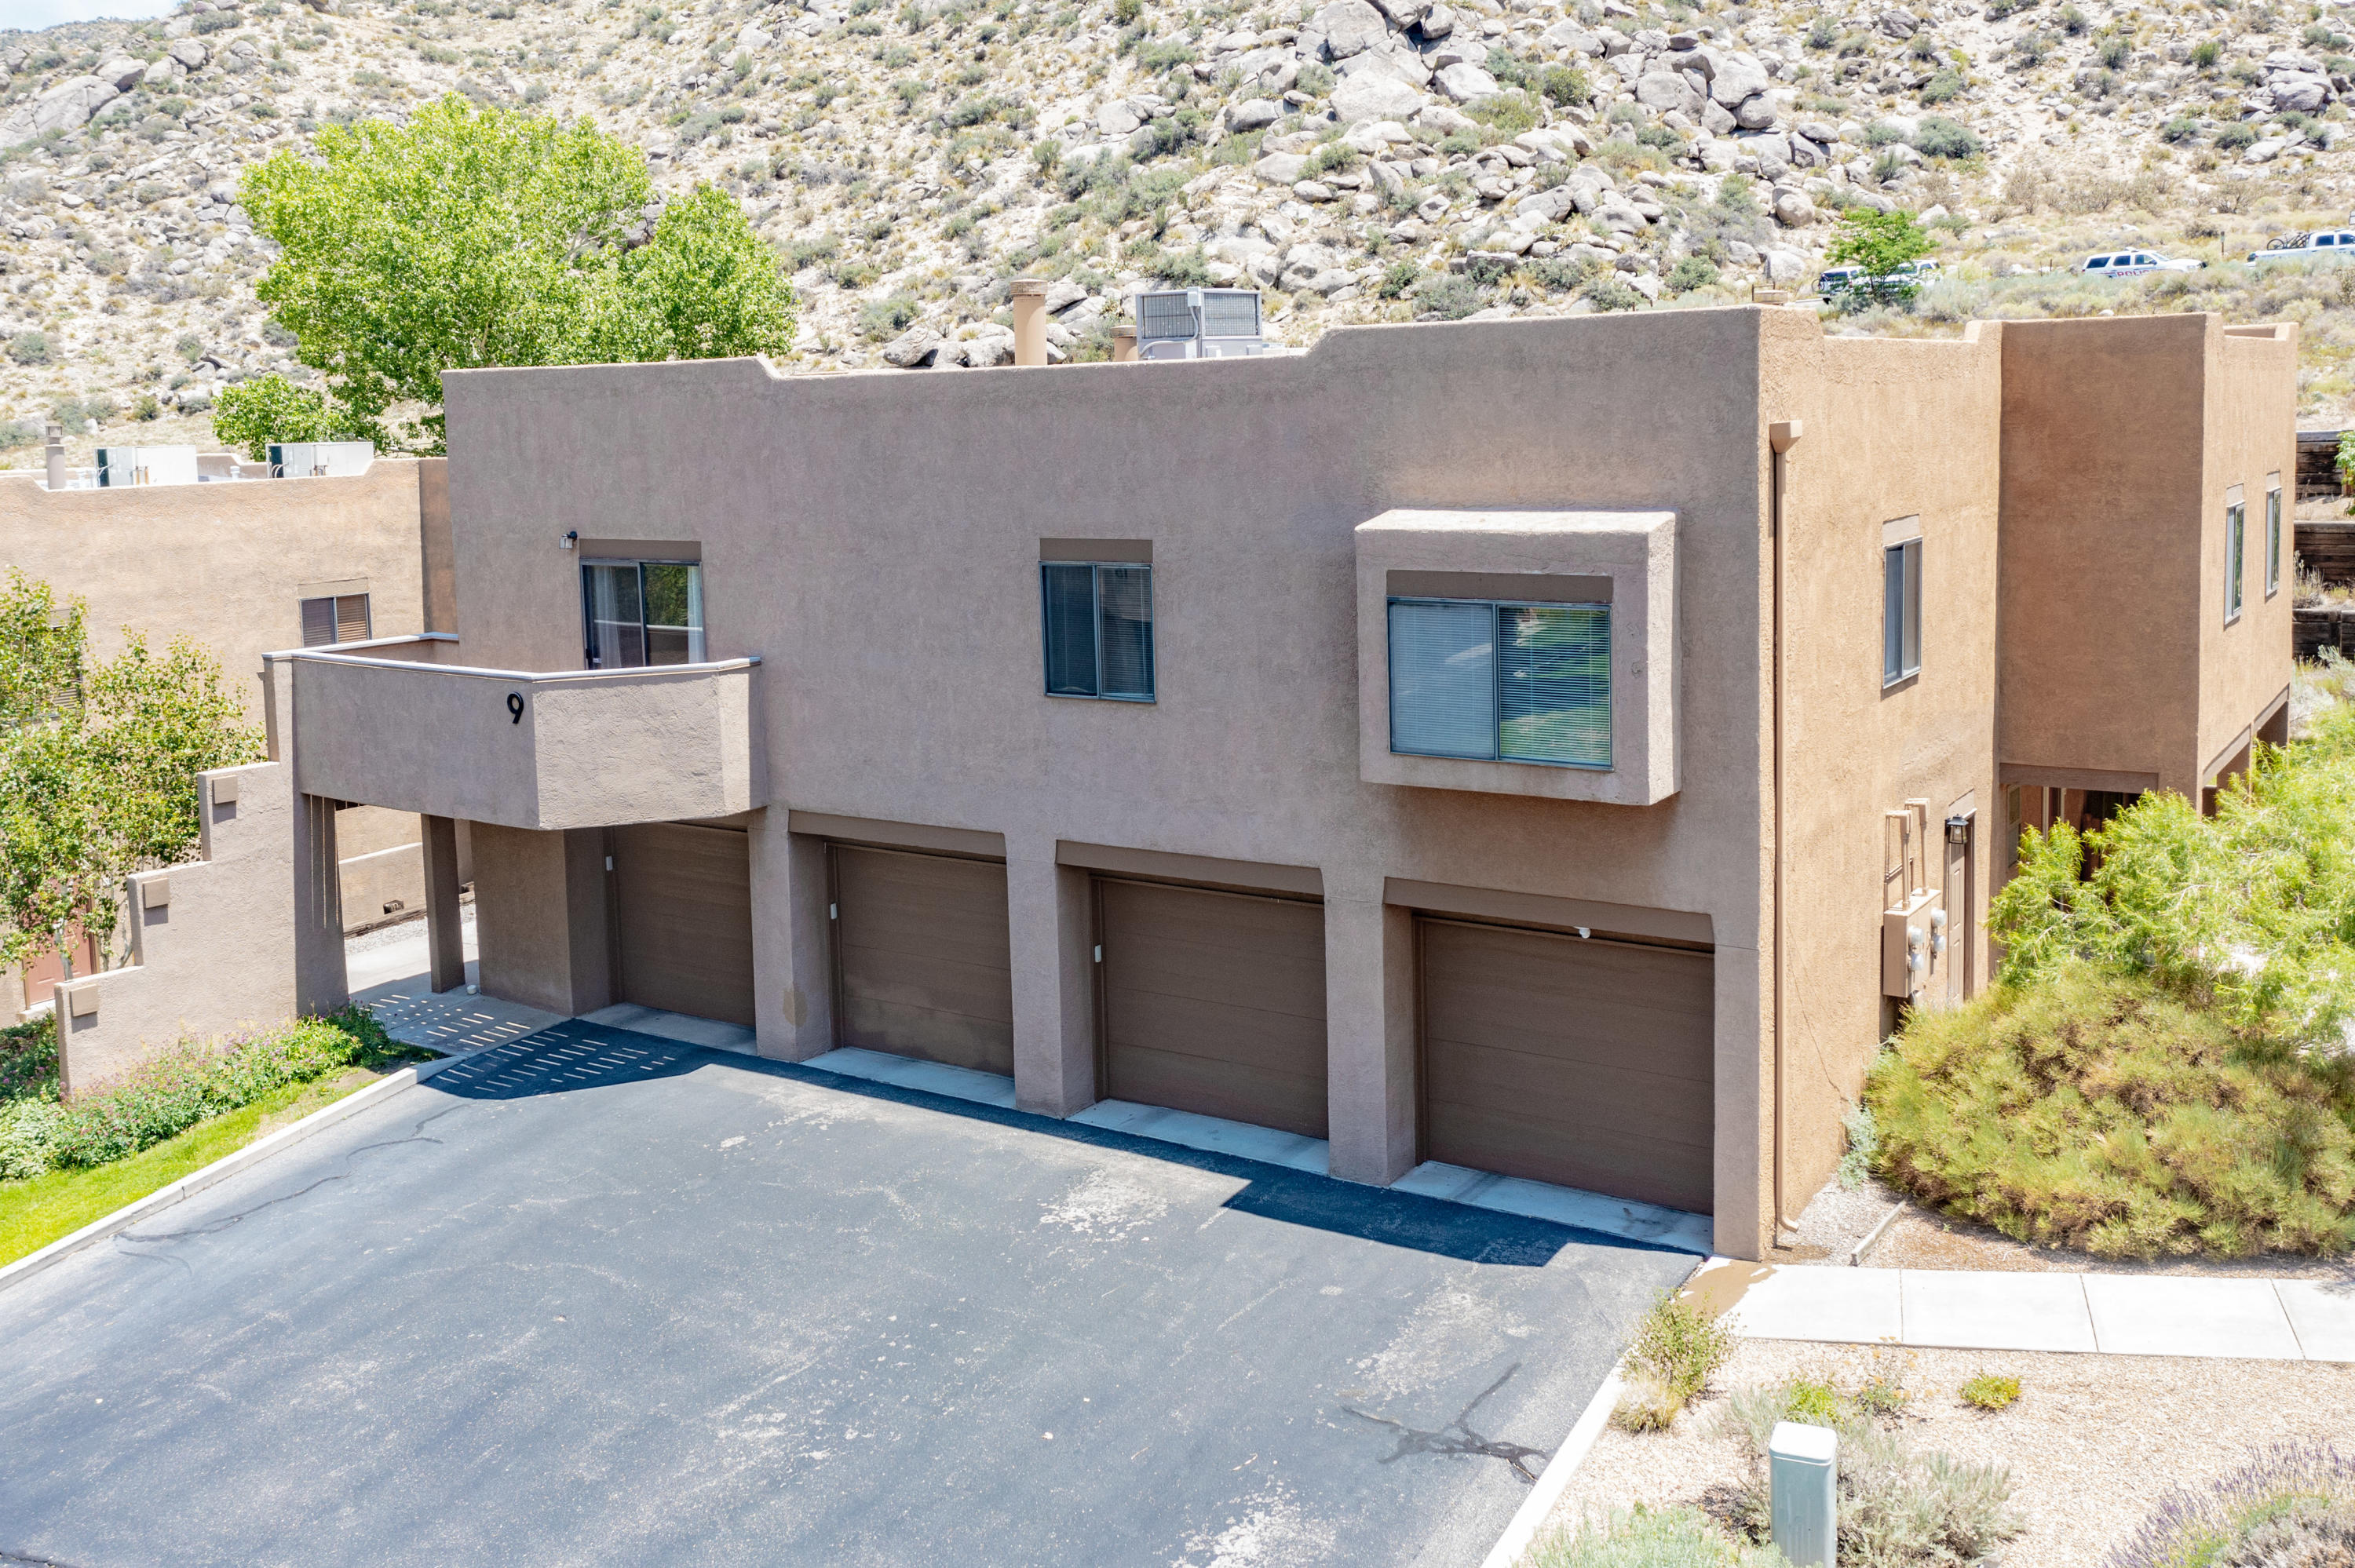 Situated at the base of the Sandia Mountains this 2 bedroom/2 full bathroom condo offers a functional floor plan, refrigerated air, and quick access to some mountain trails. Open kitchen and living room concept lend itself to easy entertaining, and the balcony beckons its new owner to take in the stunning NM sunsets and views. Attached one car garage not only provides shelter but it also boasts under staircase storage. This desirable location imparts a low maintenance lifestyle as the HOA takes care of the exterior of the residence, landscaping, and water. Schedule your viewing today!